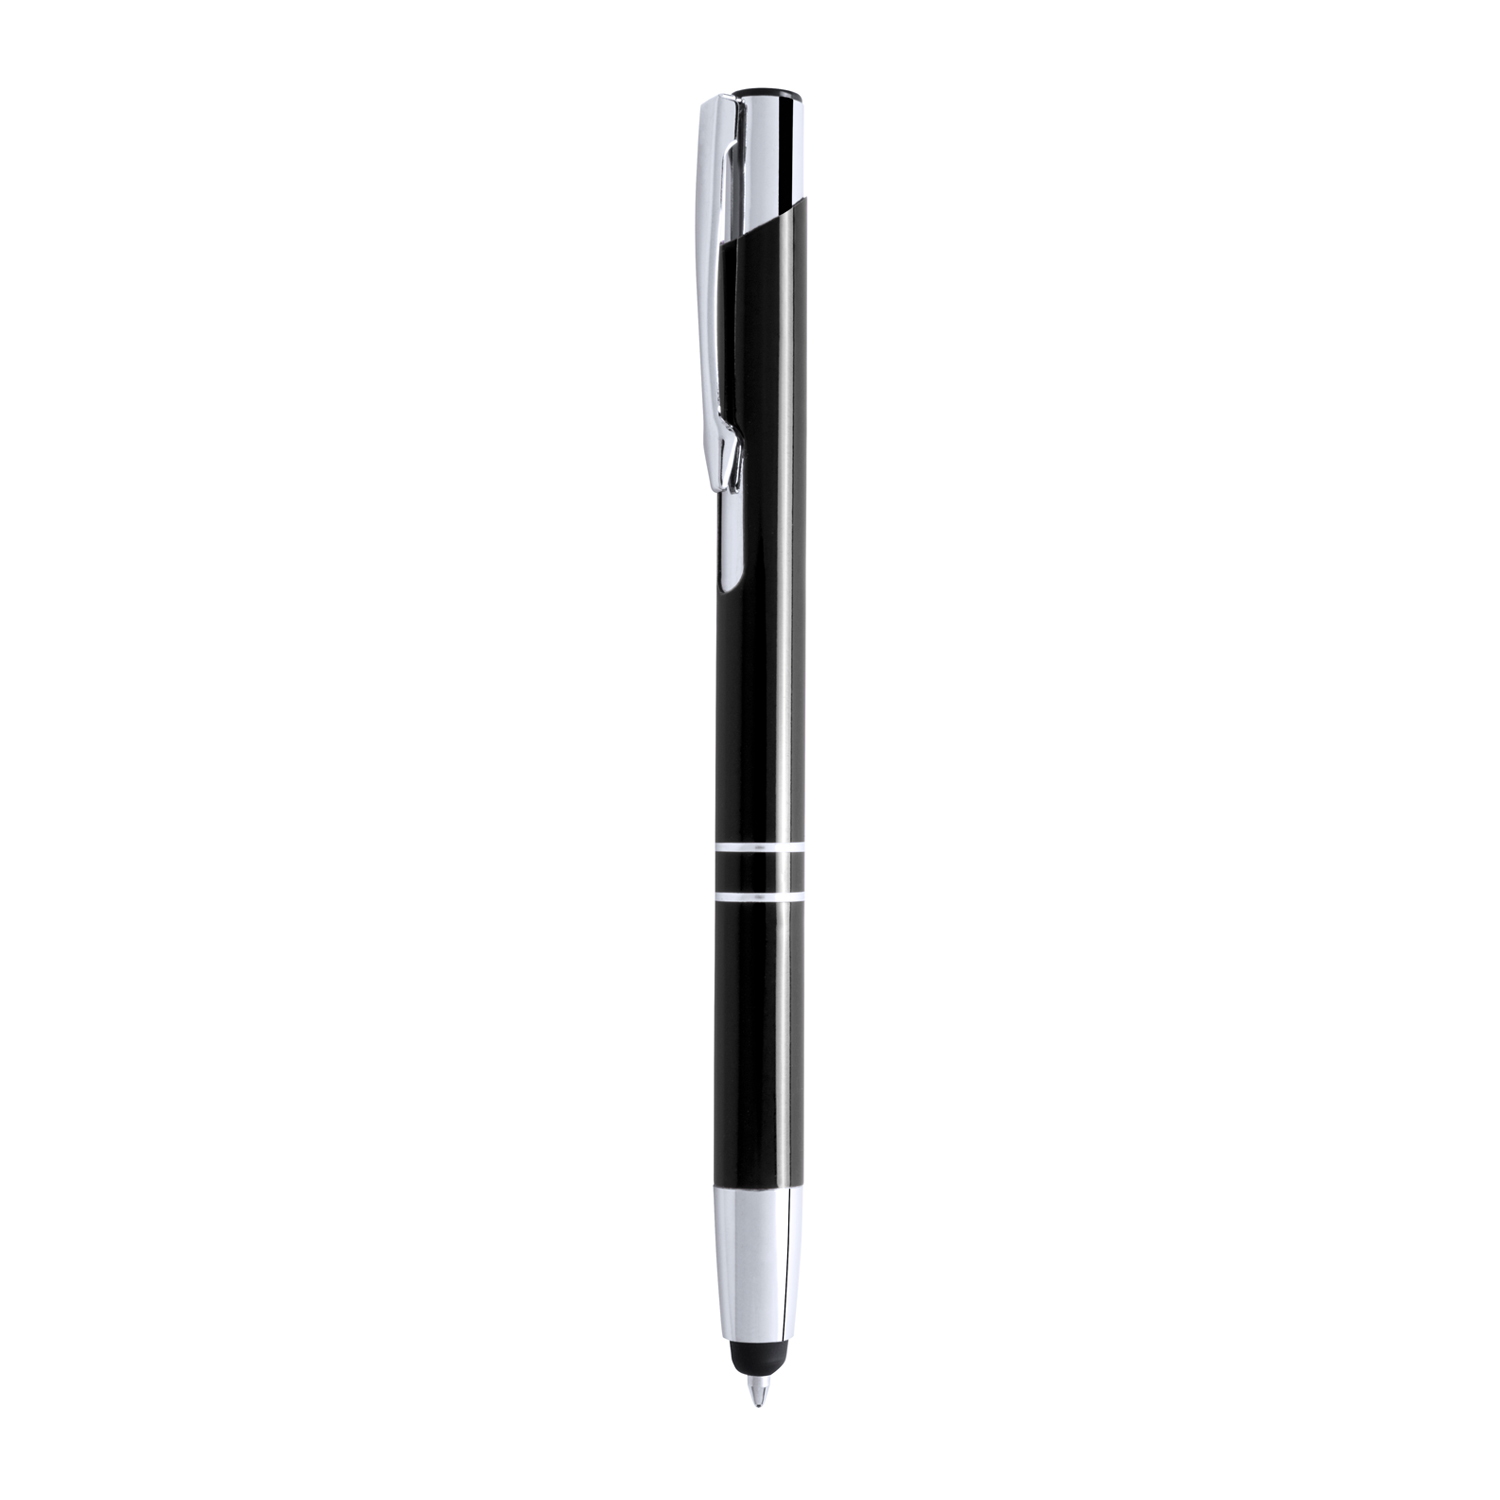 Ball Pen 058 (Aluminium ball pen) - hmi22058-01 (Black)